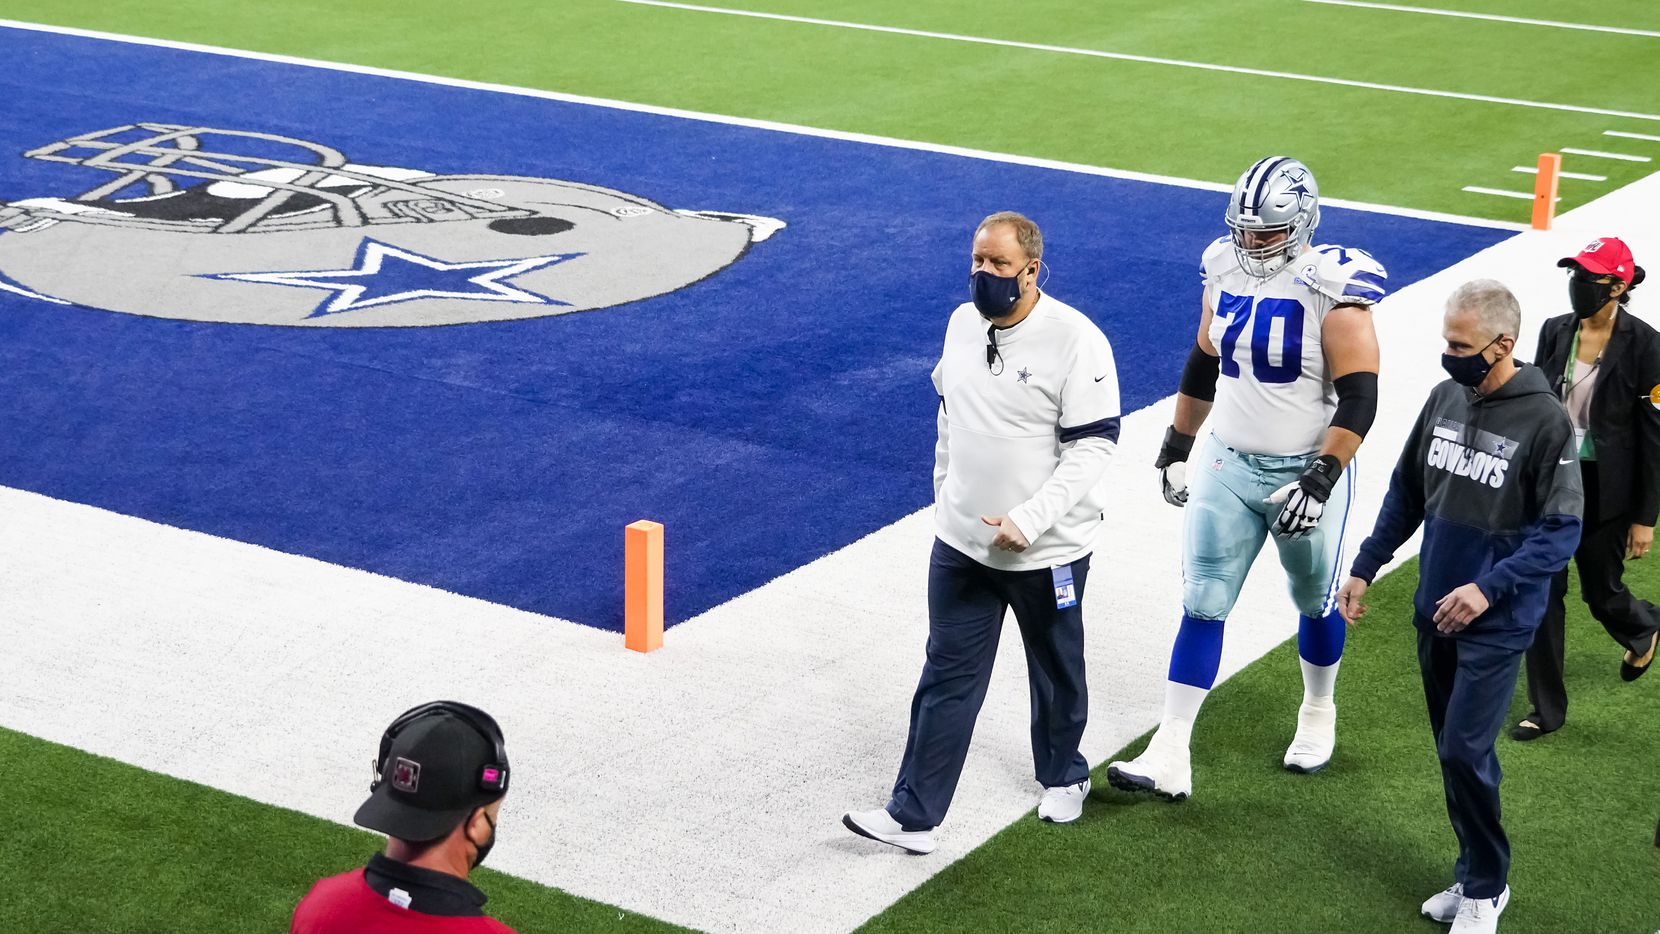 Dallas Cowboys offensive guard Zack Martin (70) head to the locker room during the second quarter of an NFL football game against the Arizona Cardinals at AT&T Stadium on Monday, Oct. 19, 2020, in Arlington.